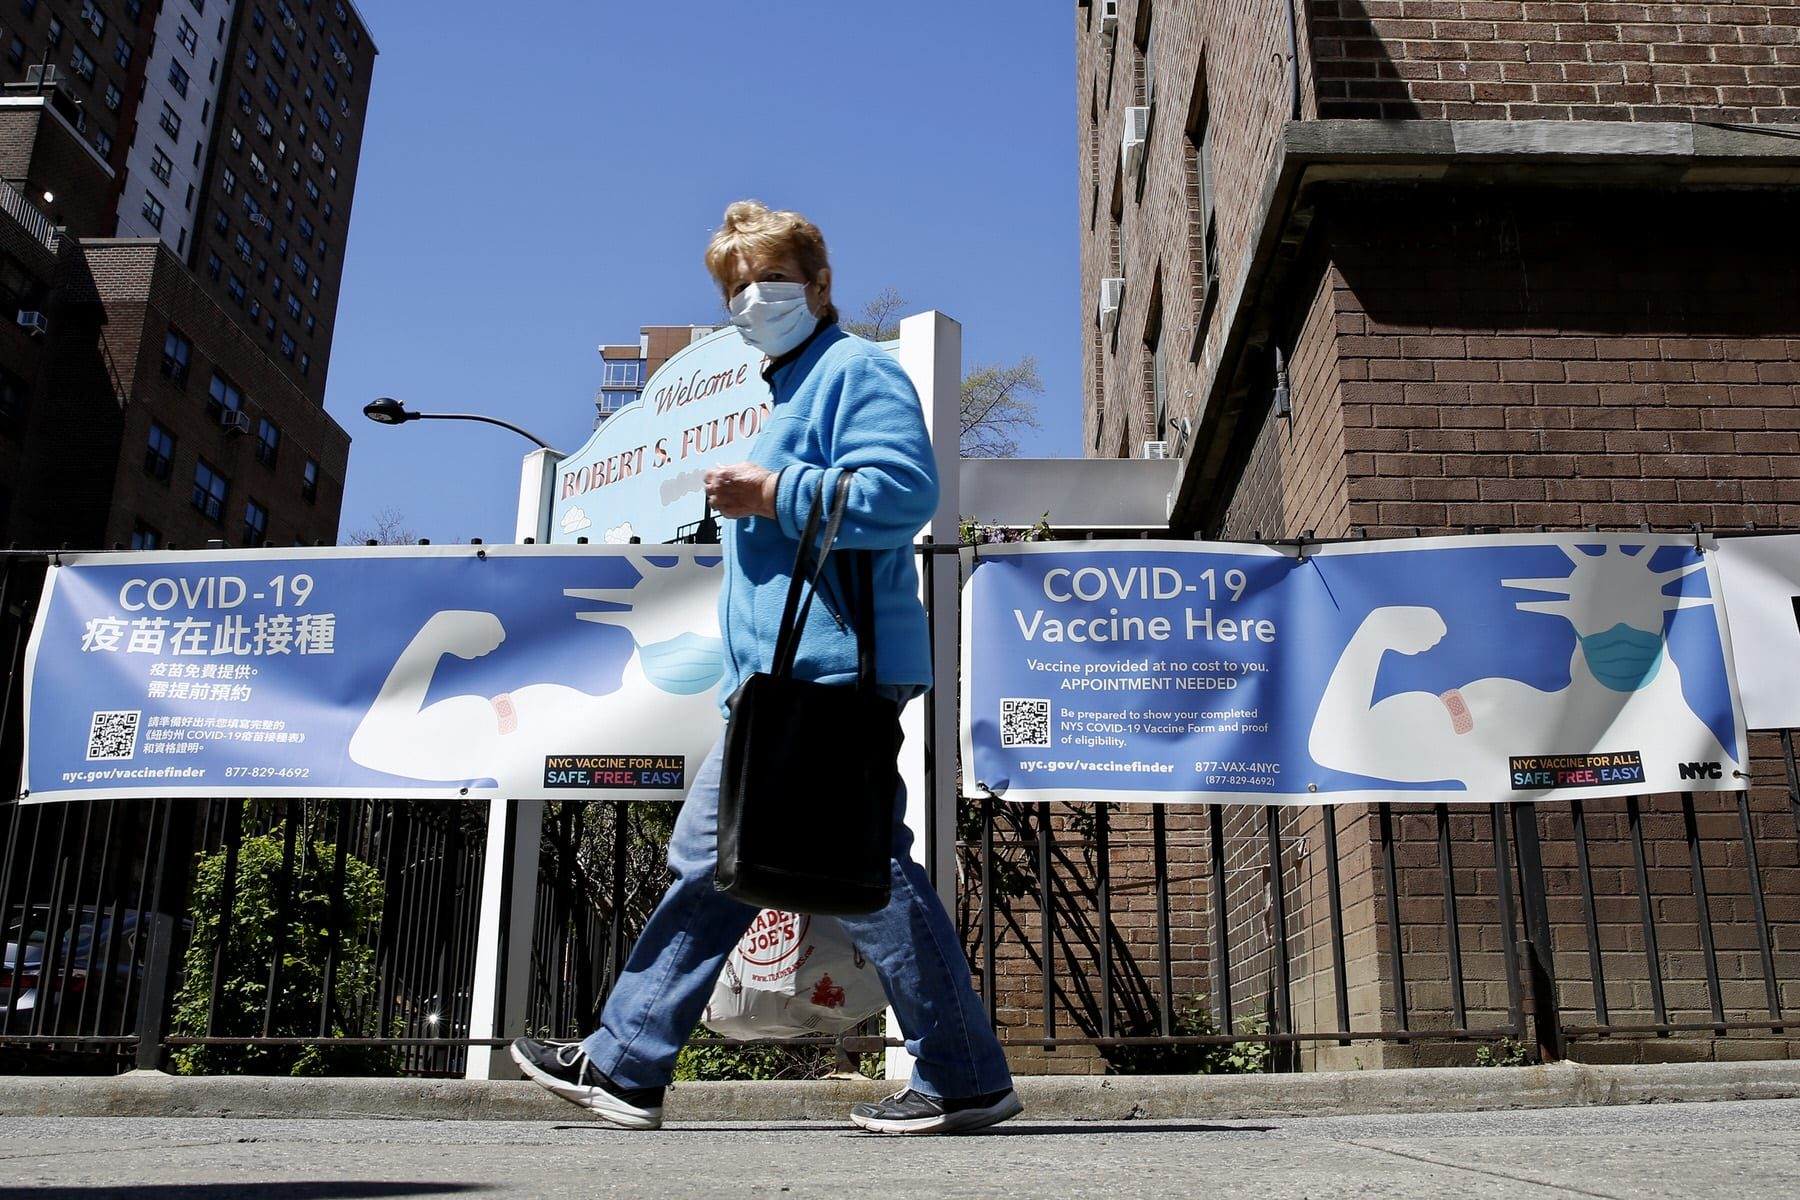 A woman walks near a Covid-19 Vaccination Center in New York City.